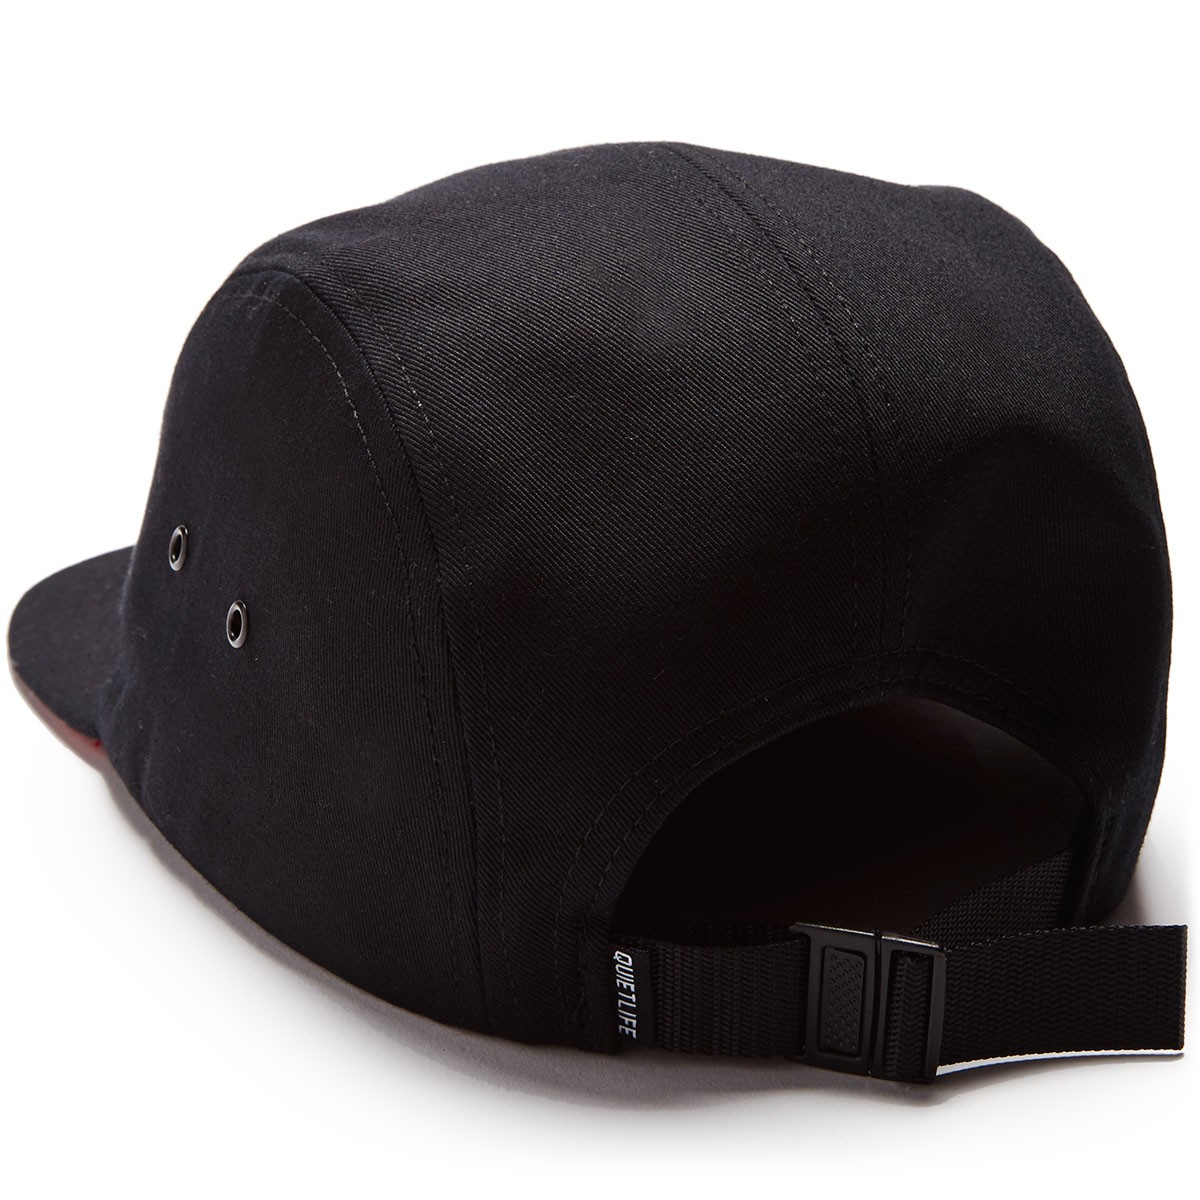 The Quiet Life Bauhaus Skull 5 Panel Hat